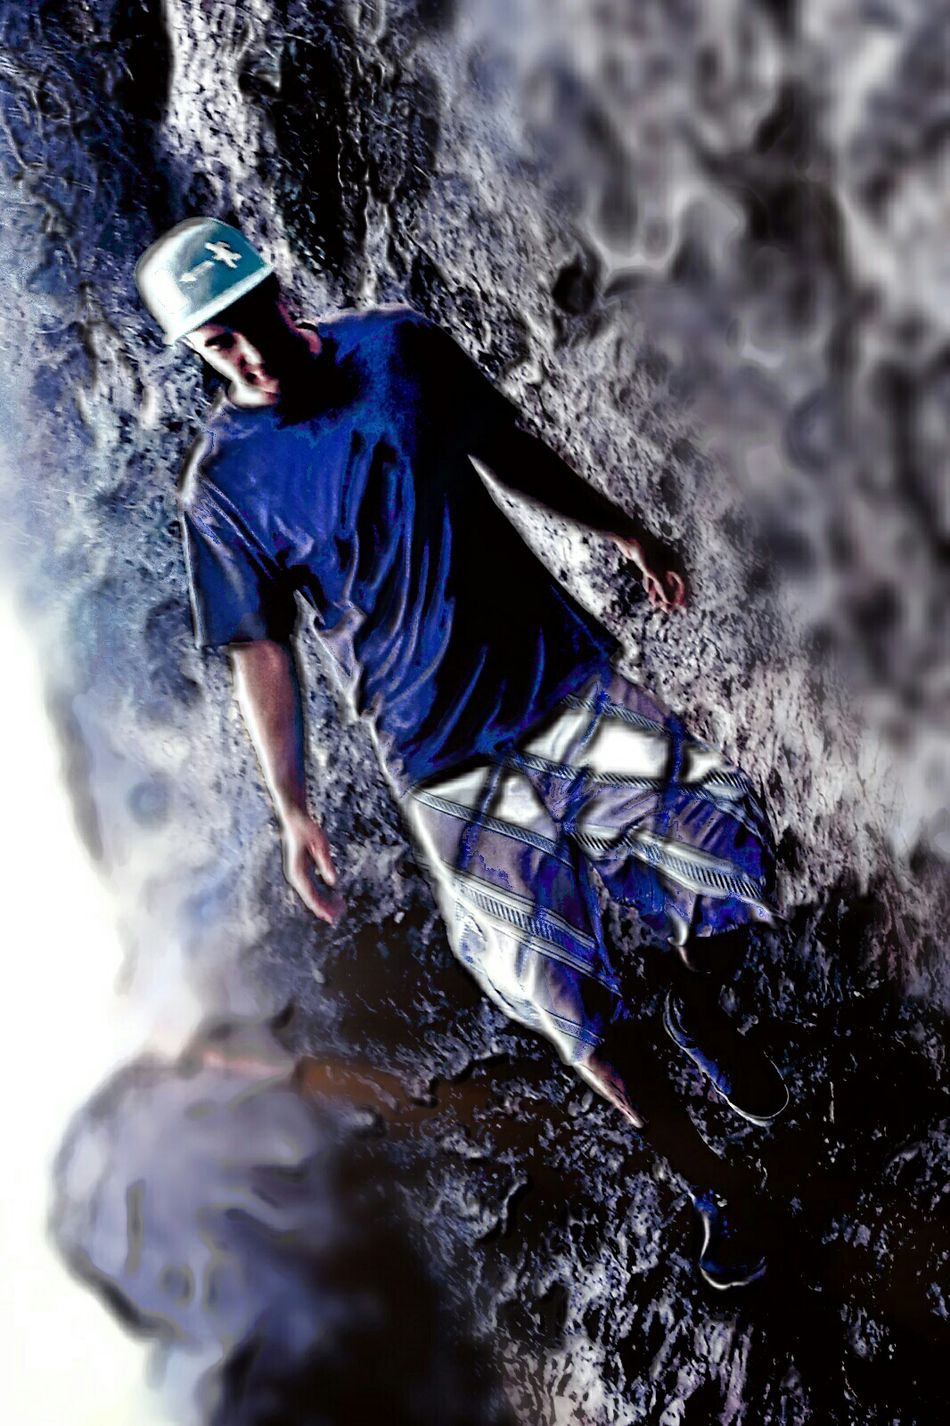 Cliff Climbing Running The Tide X😨w😦x Notes From The Underground